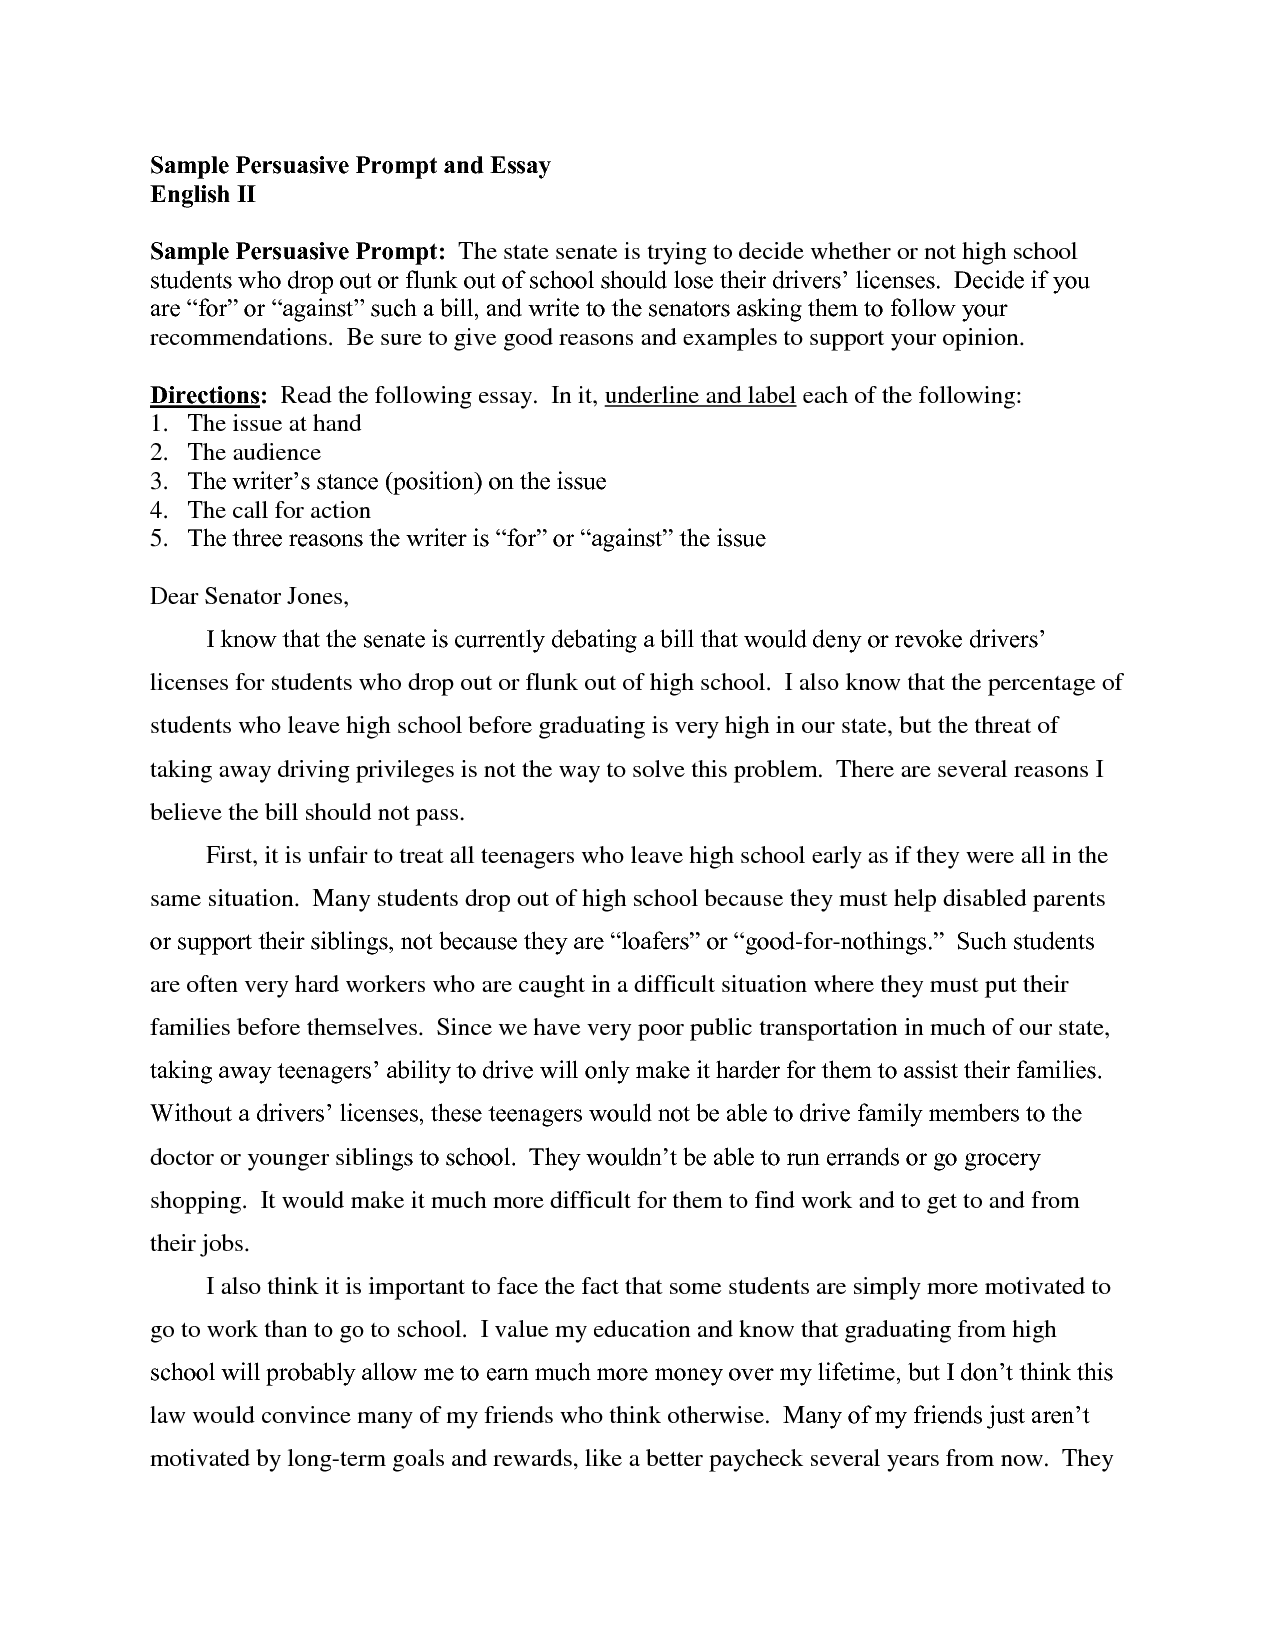 016 Education Research Paper Topic Suggestions Persuasive Essay Topics For High School Sample Ideas Highschool Students Good Prompt Funny Easy Fun List Of Seniors Writing English Wondrous Full